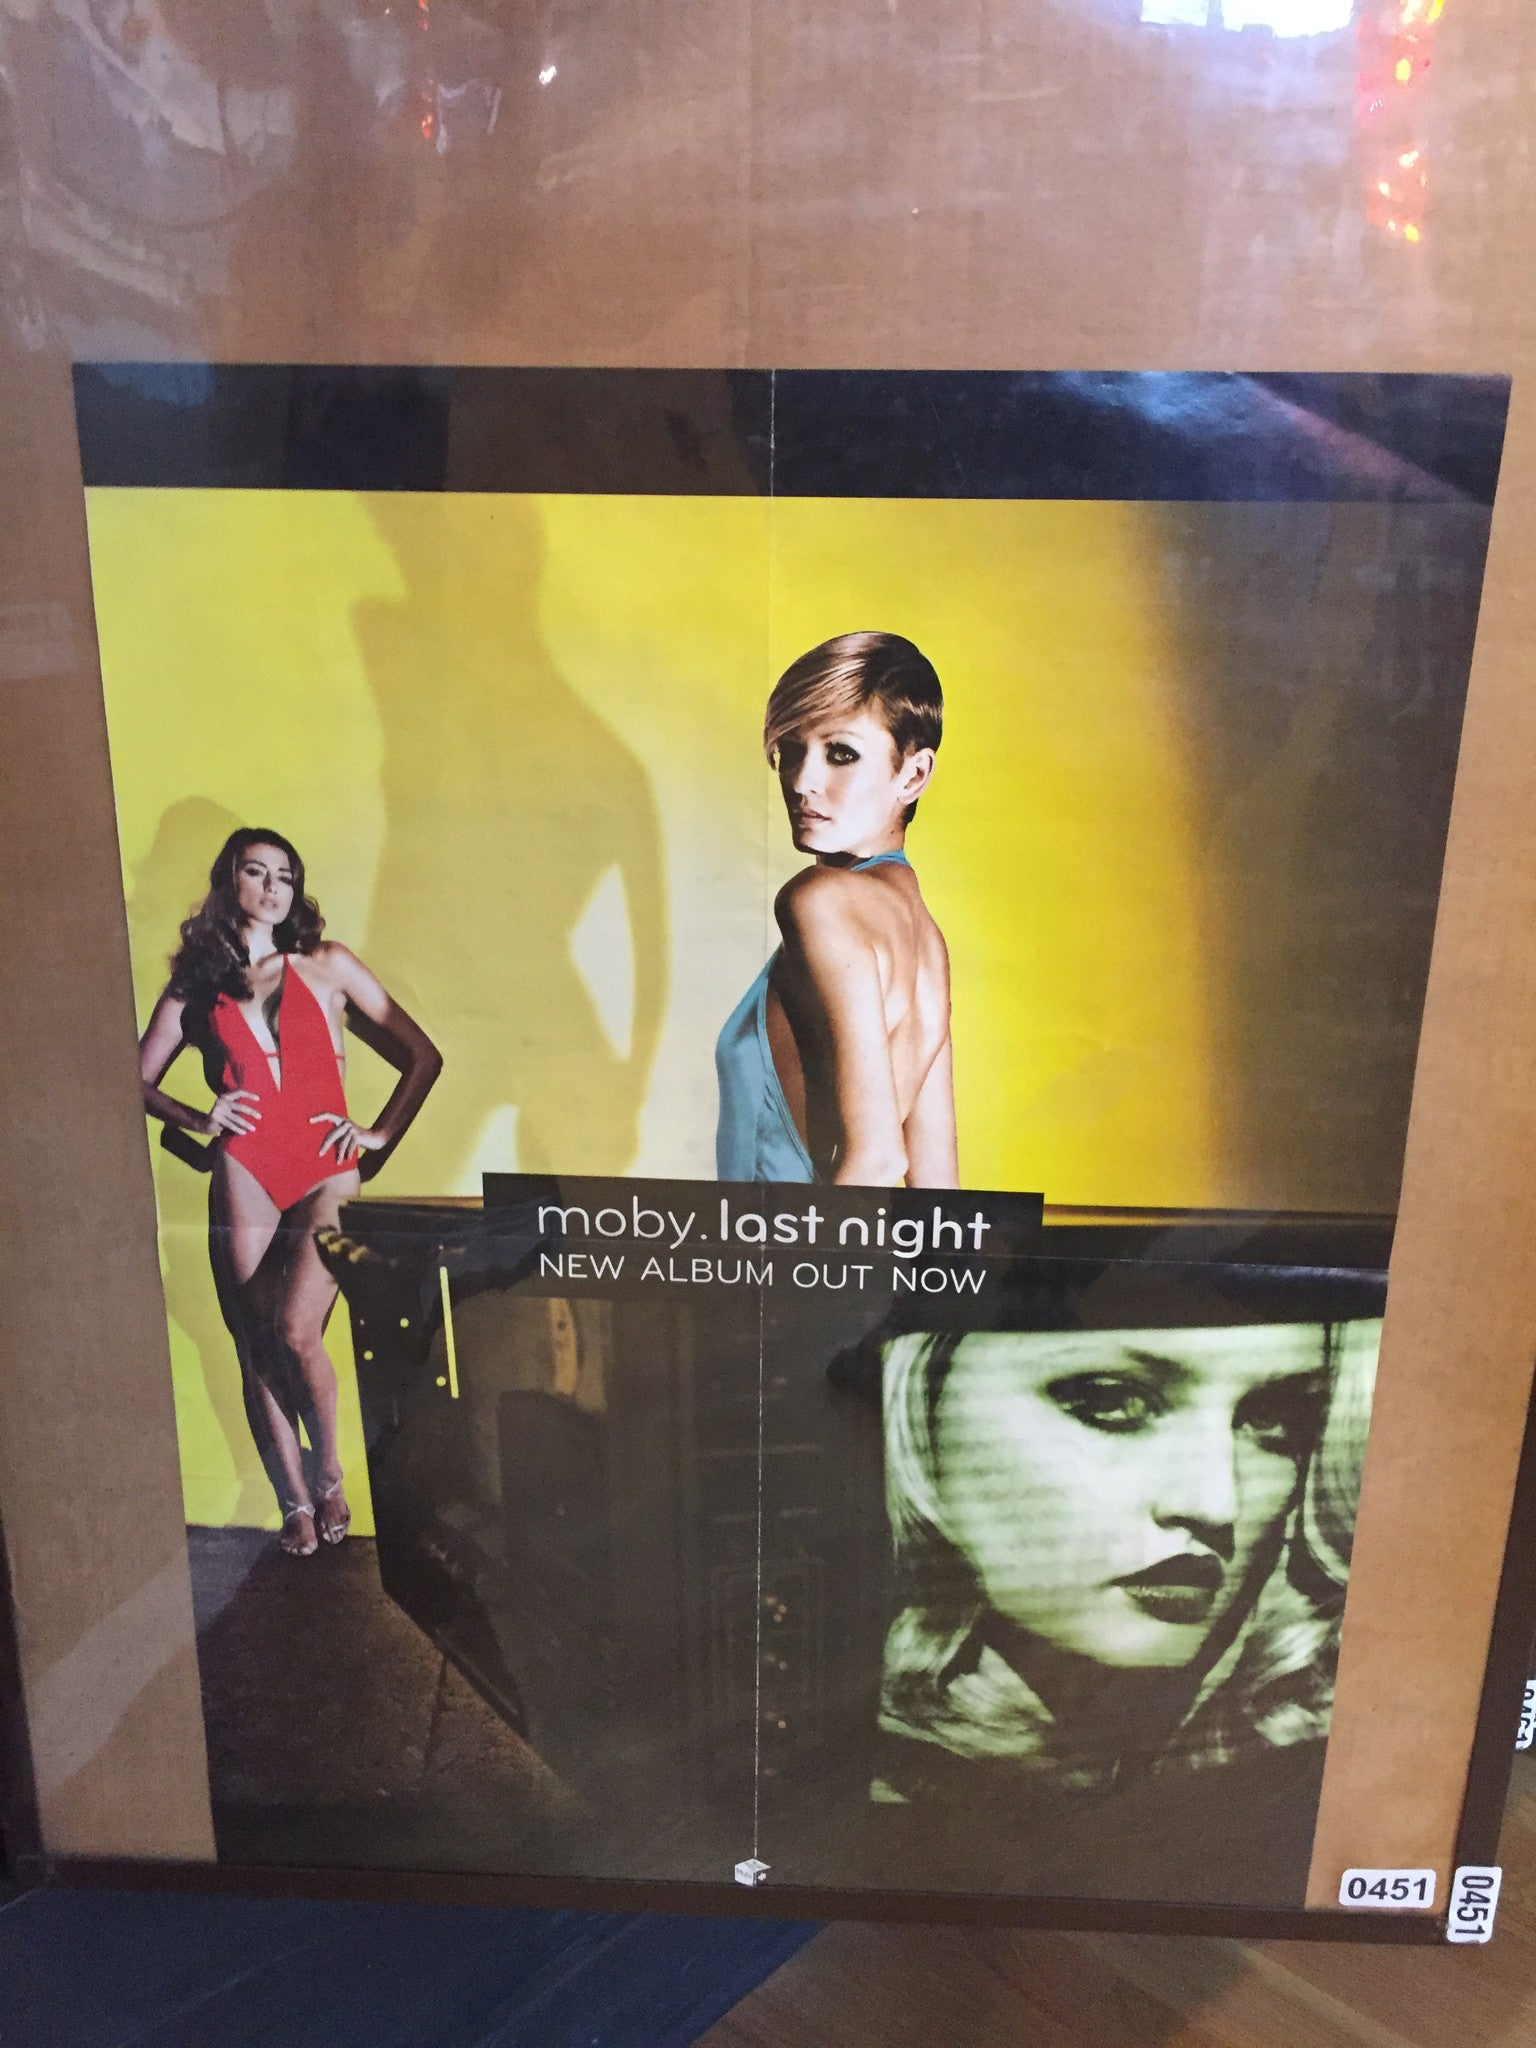 Moby – Last Night - 2008 - (double sided) - 0451 Poster